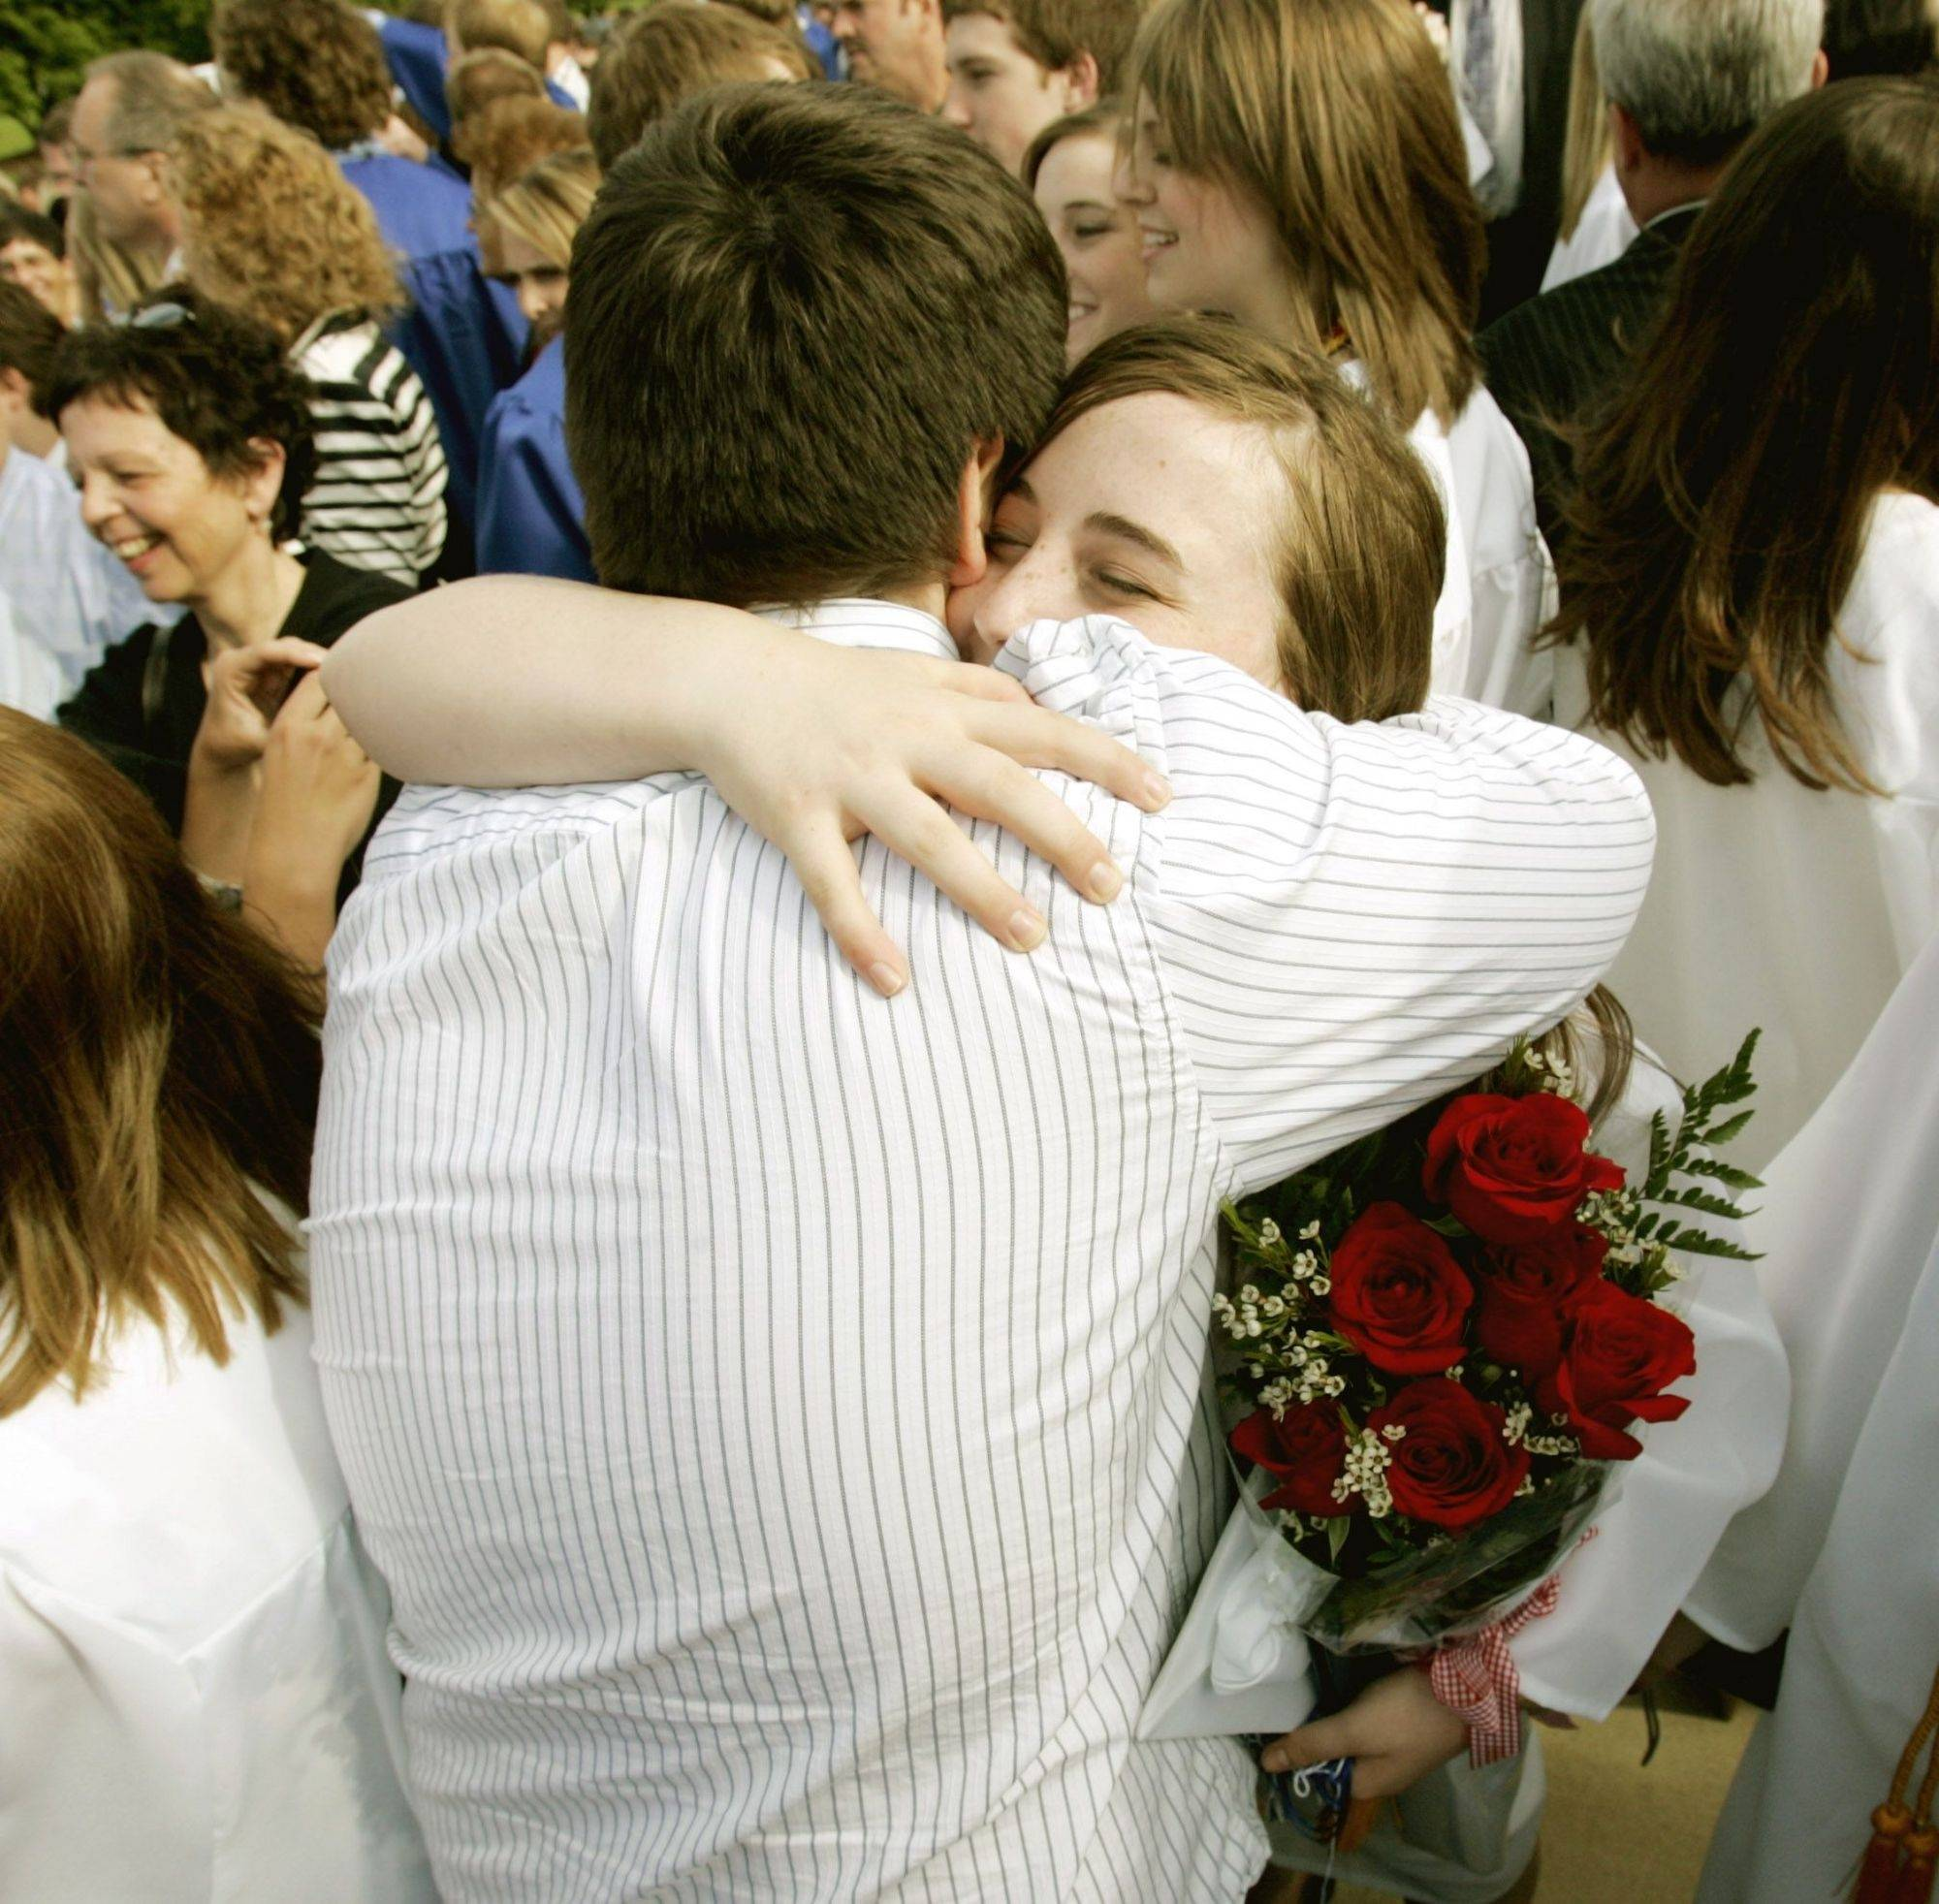 Mike Workman,left, of Bloomingdale gives Brittany Riesenbeck,right, a hug after theSt. Francis High School graduation ceremony Sunday at St. John Neumann Catholic Church in St. Charles.